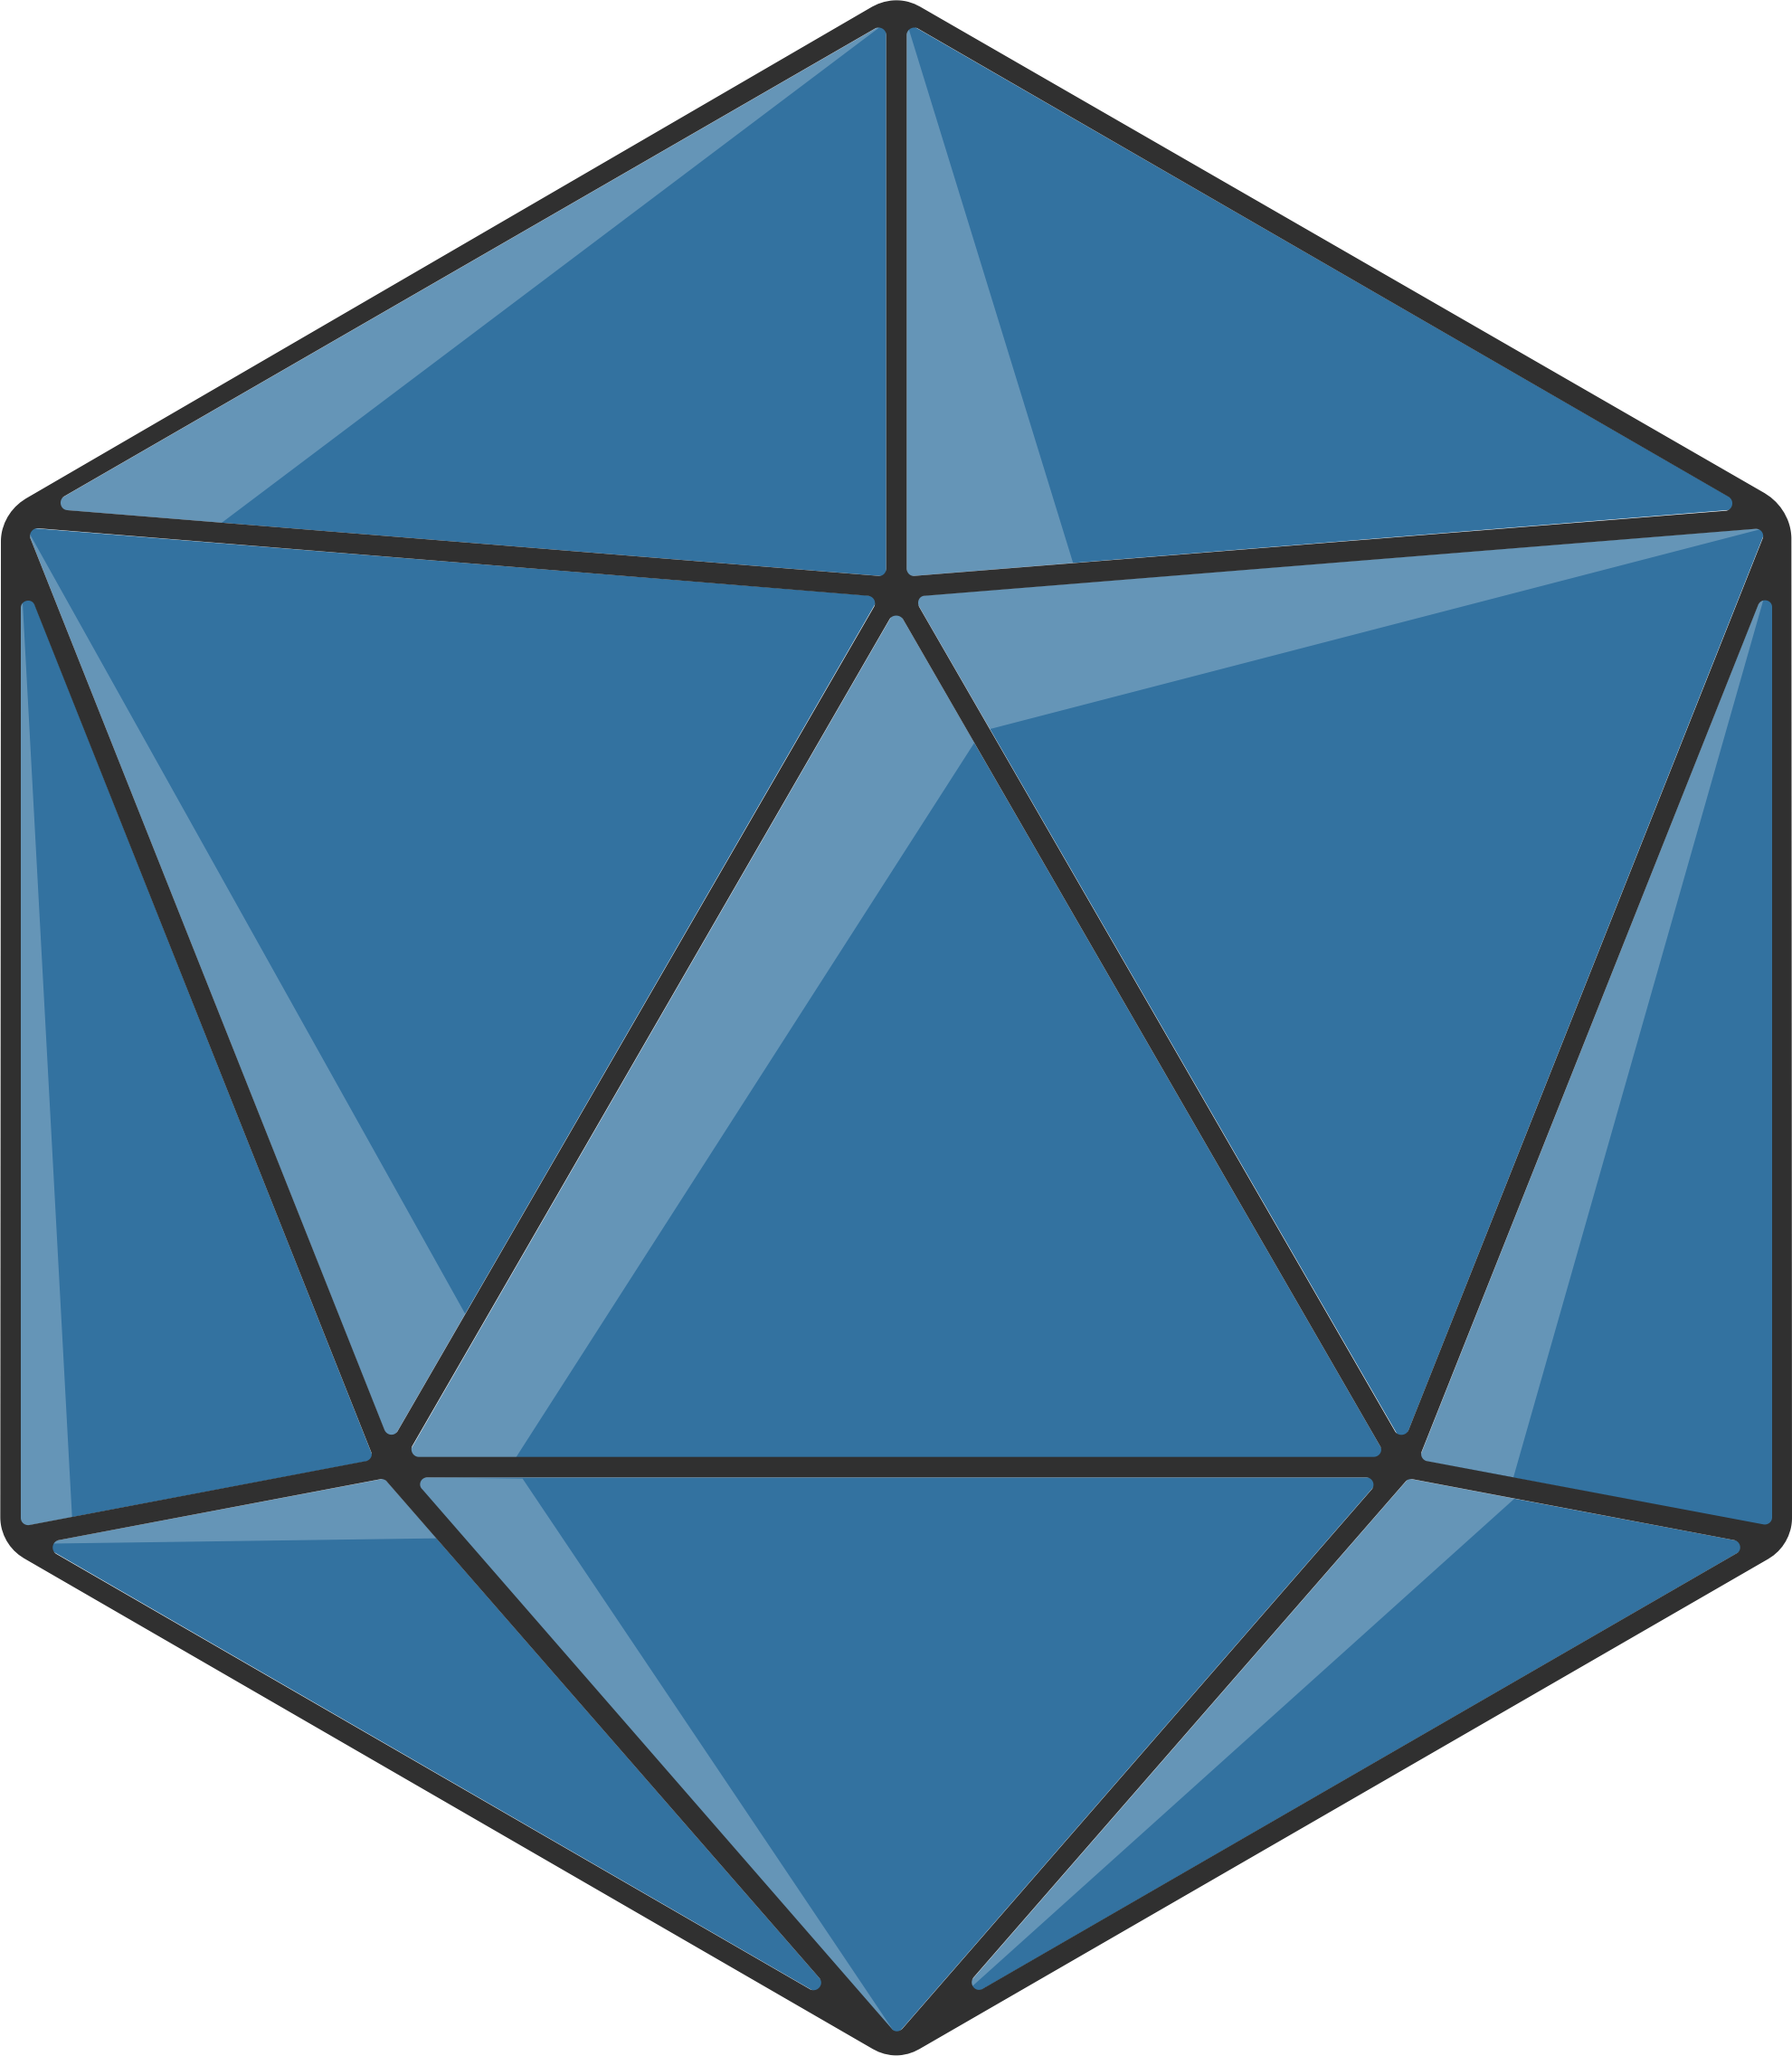 20 sided dice png. Icons free and